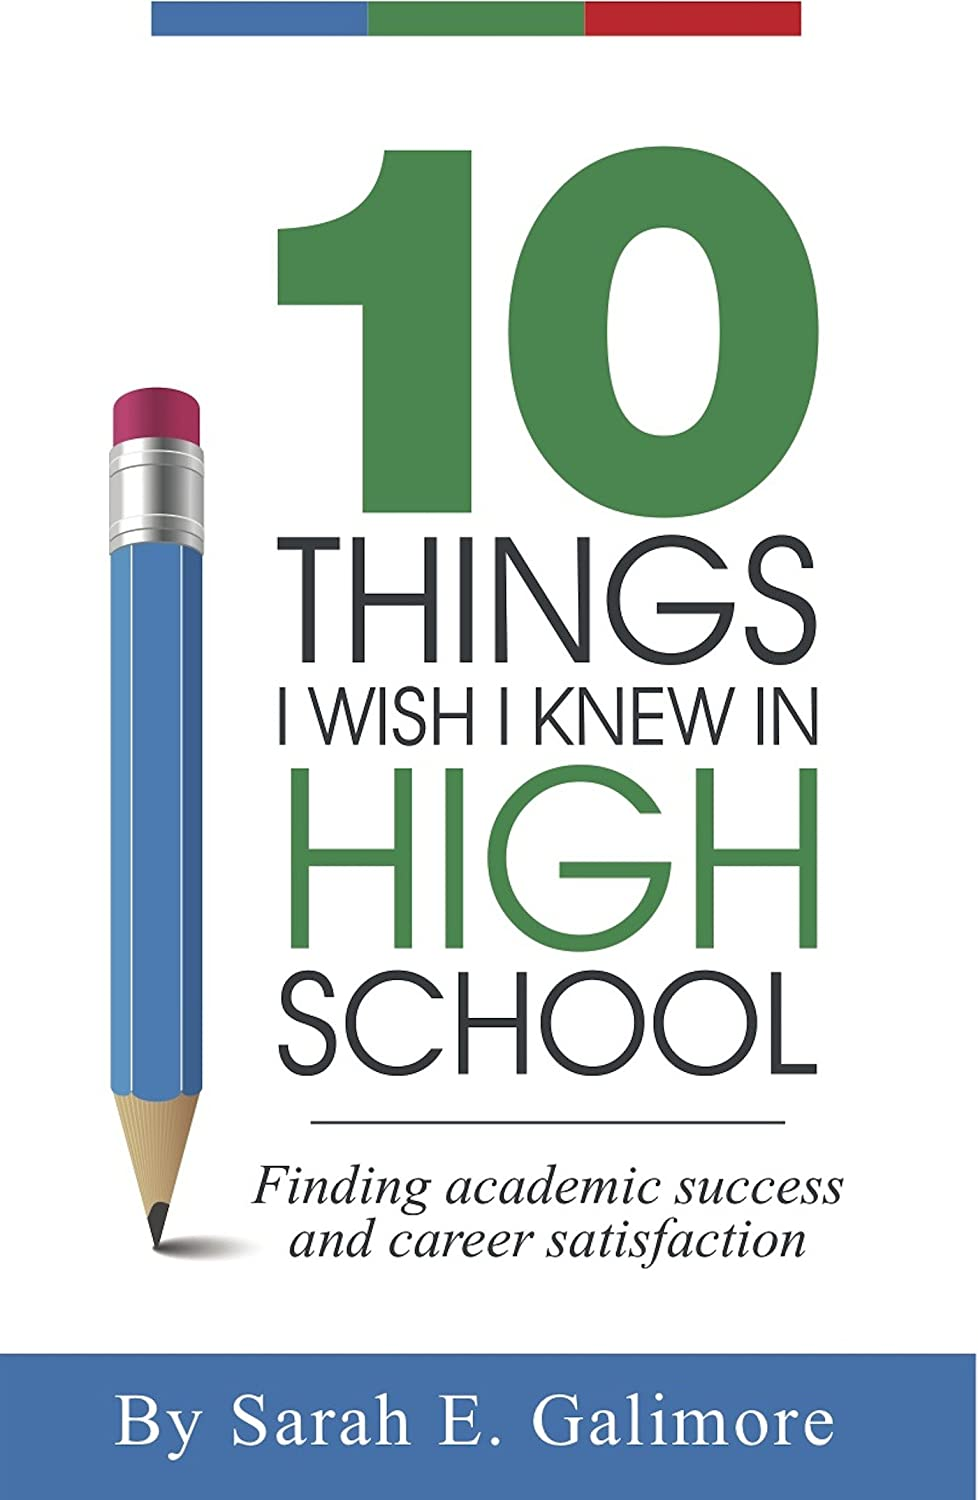 10-Things-Book-Cover